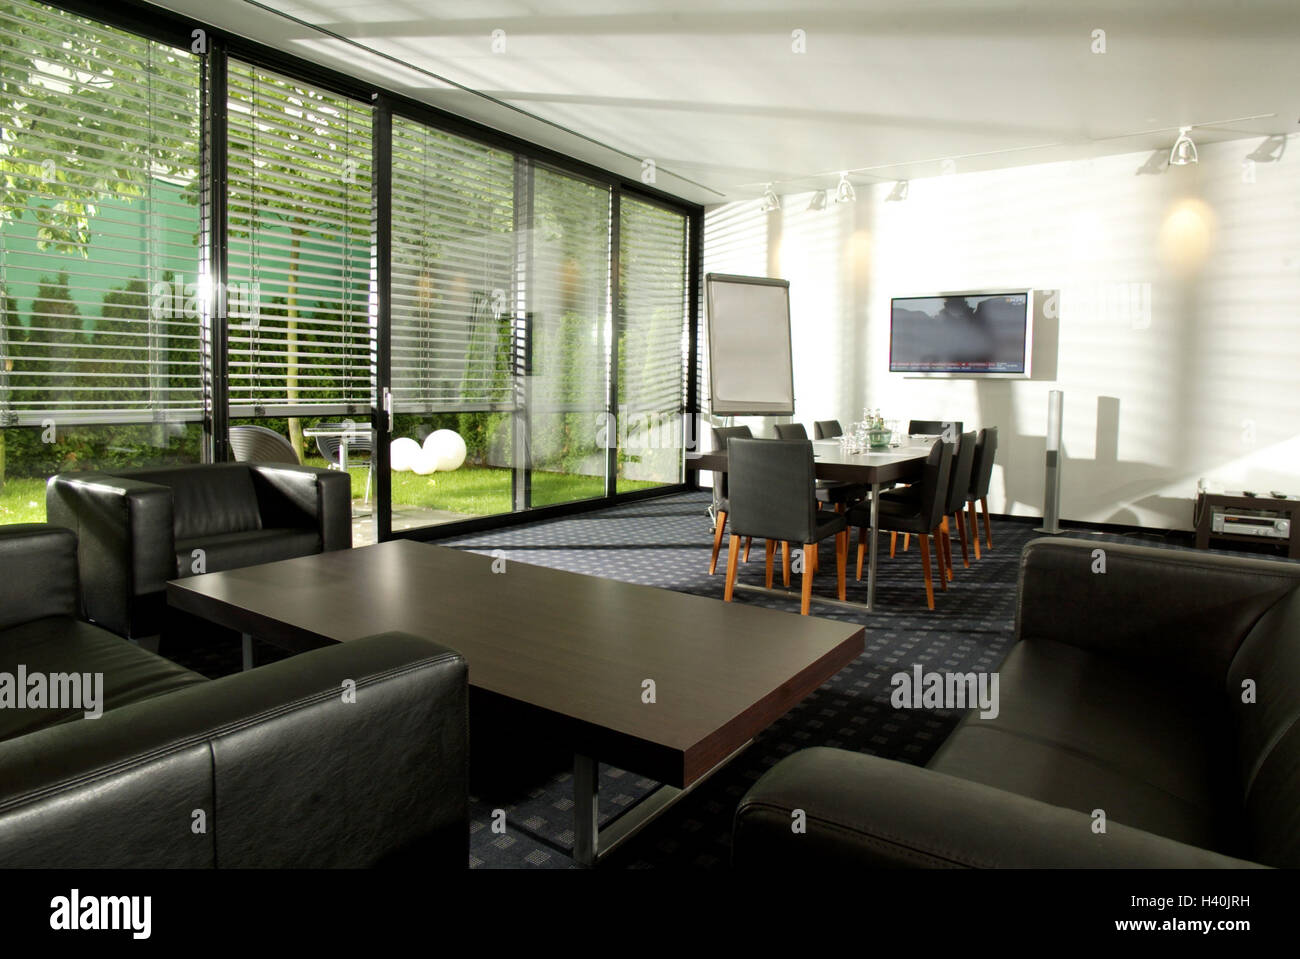 Meeting Room Conference Table Flat Screen Tv Couch